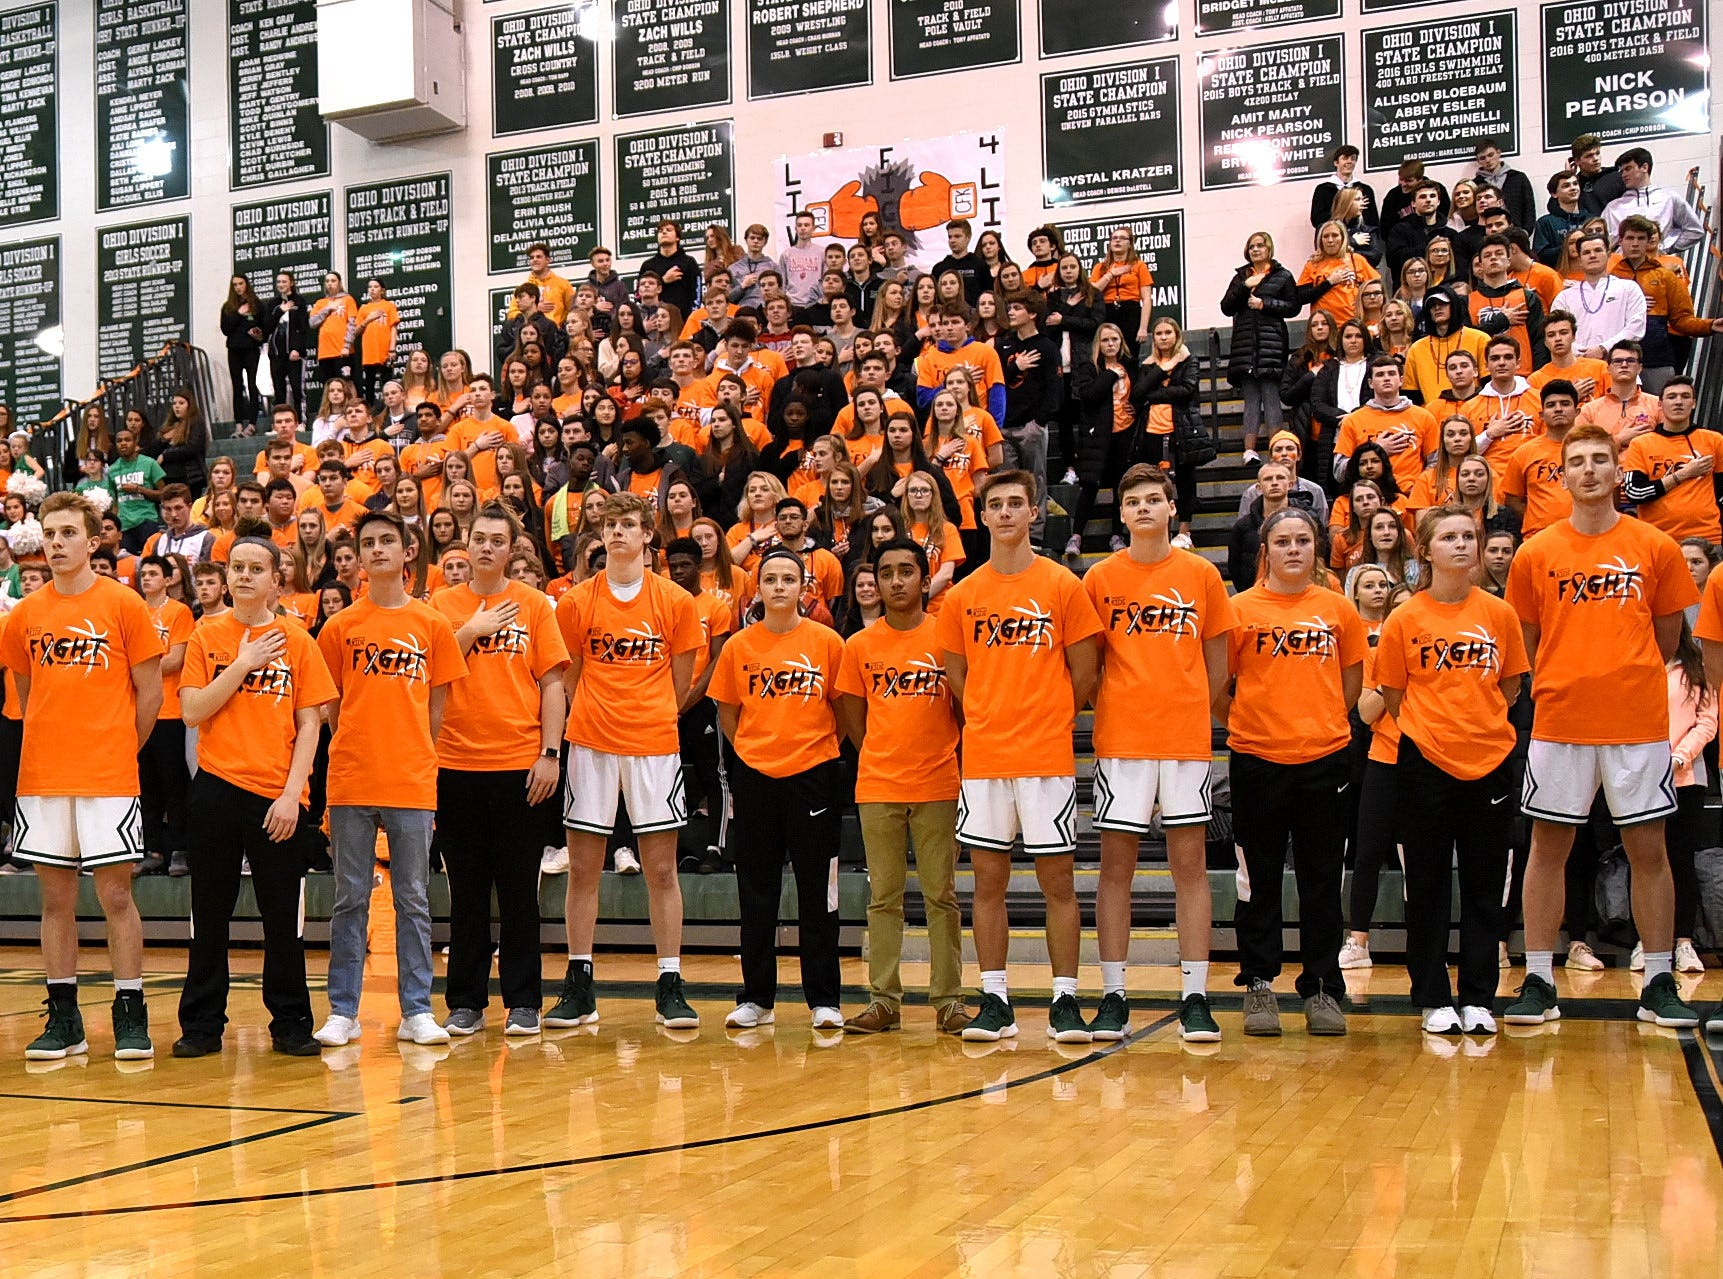 Gents and Lady Comets are flanked by the Mason student body during the National Anthem at the Third Annual Live for Liz Fight For Cancer Free Kids Basketball Game, Feb. 1, 2019.